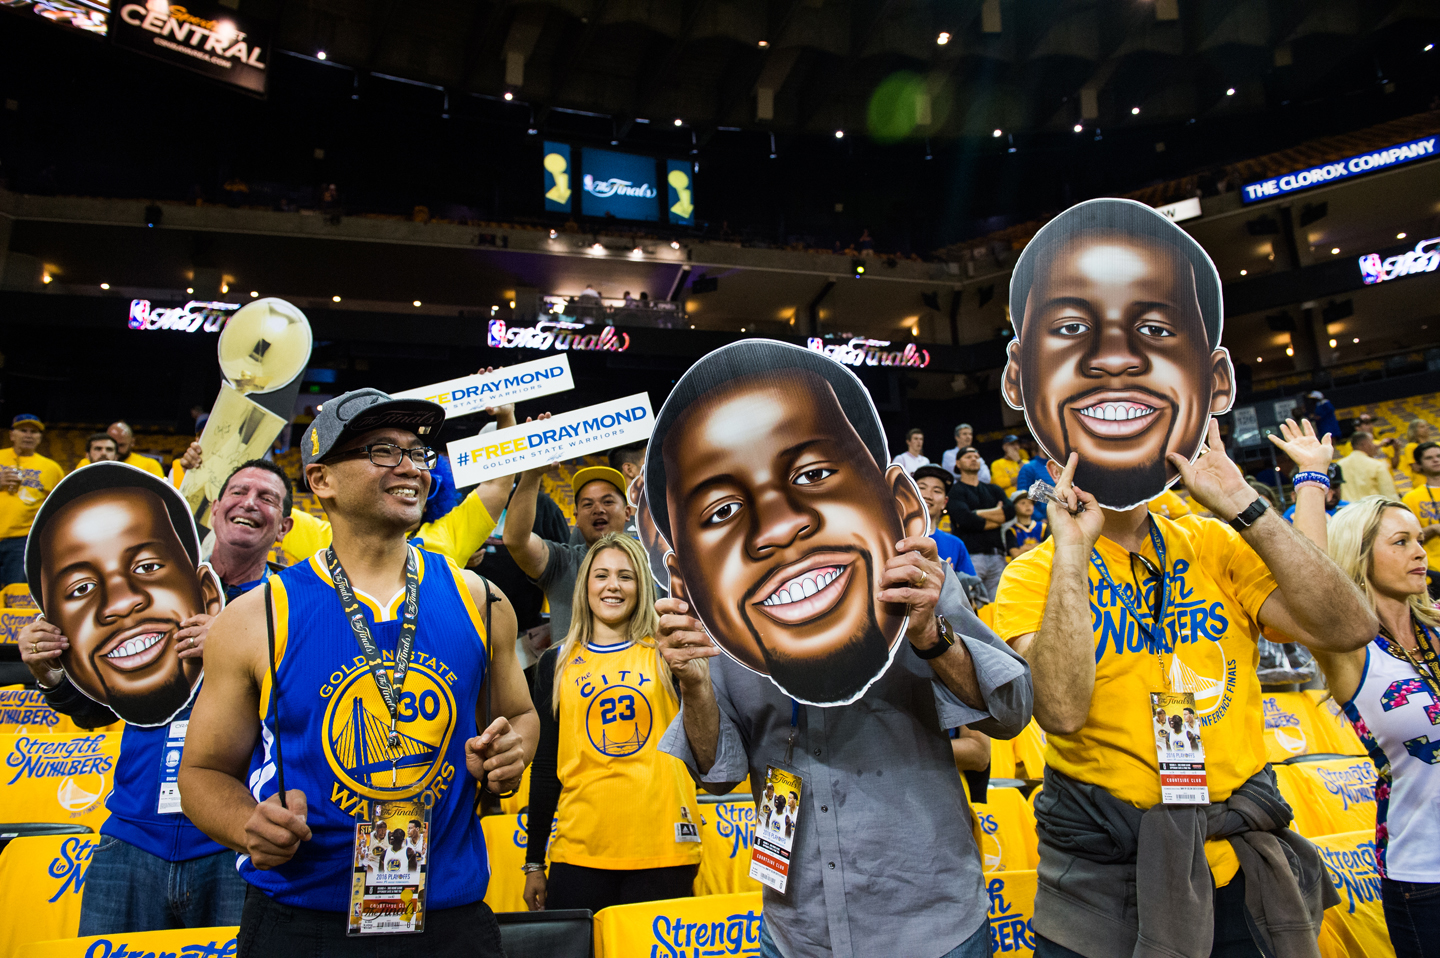 Despite his suspension, Draymond Green is present in spirit as fans have fun with cardboard cut-outs of Green in the stands prior to the start of Game Five of the 2016 NBA Finals. Golden State Warriors against the Cleveland Cavaliers during Game Five of the 2016 NBA Finals at ORACLE Arena on June 13, 2016 in Oakland, California.